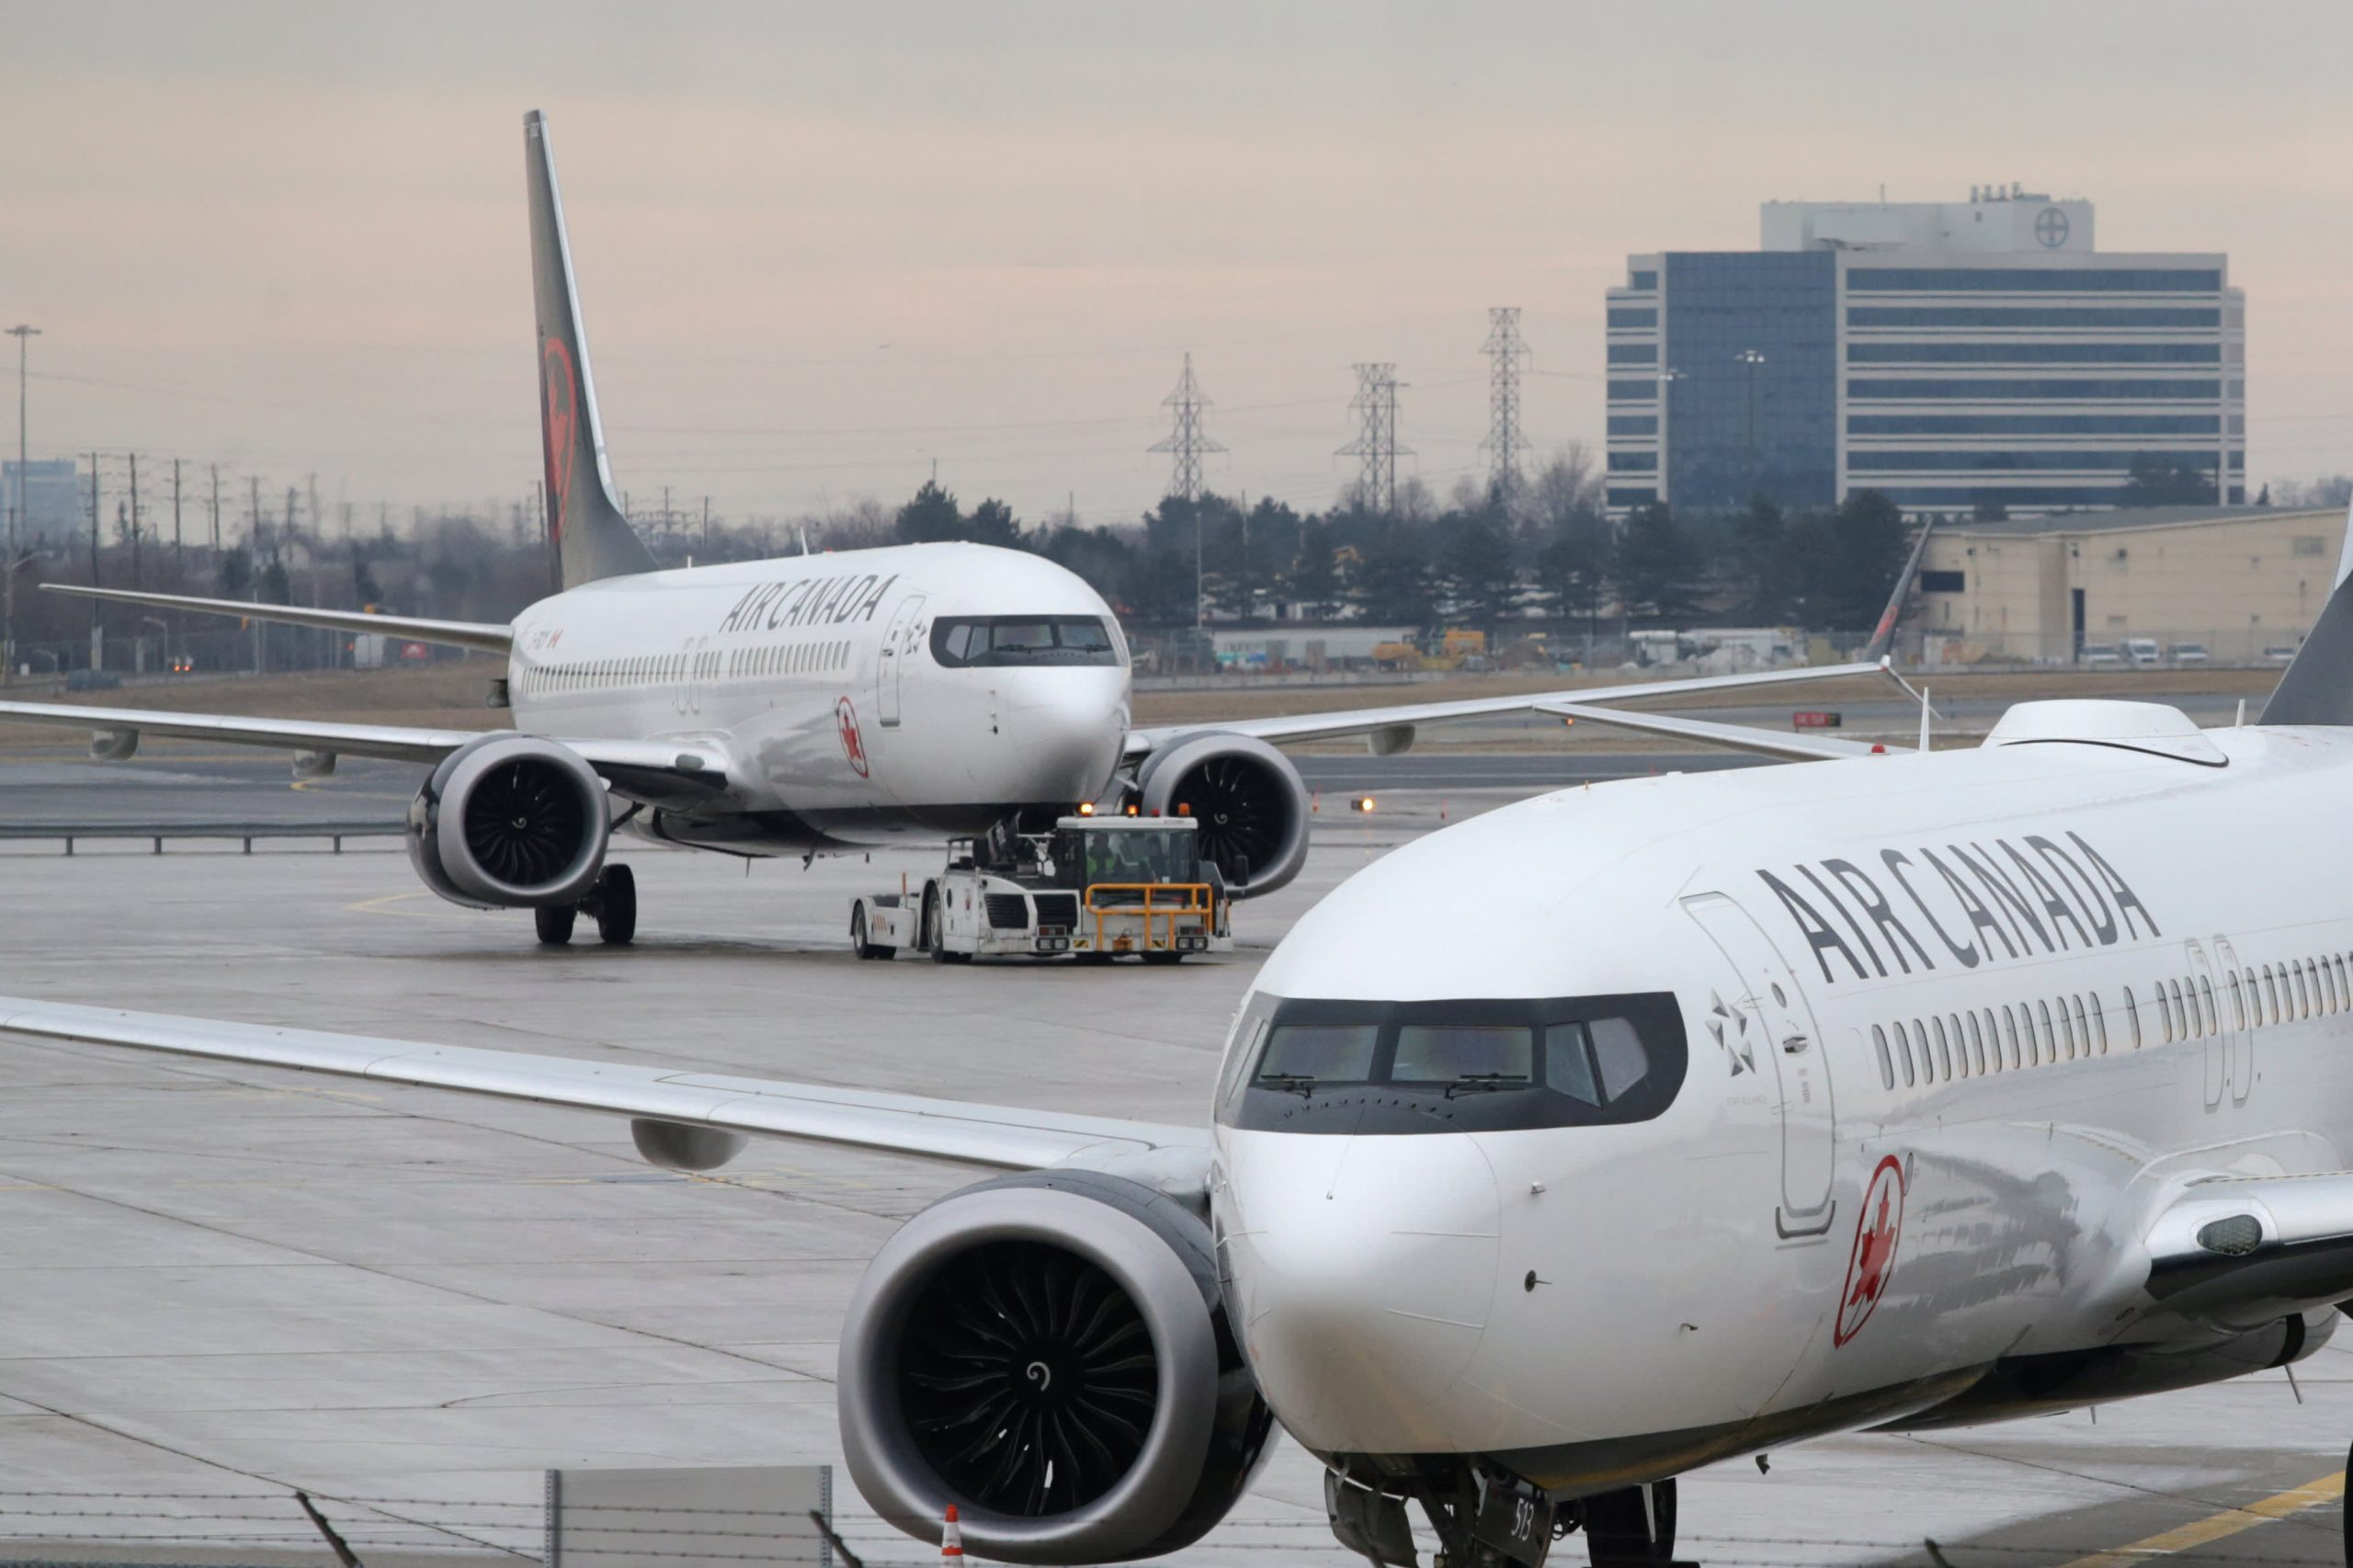 air-canada-boeing-737-max-ferry-flight-diverts-after-engine-issue